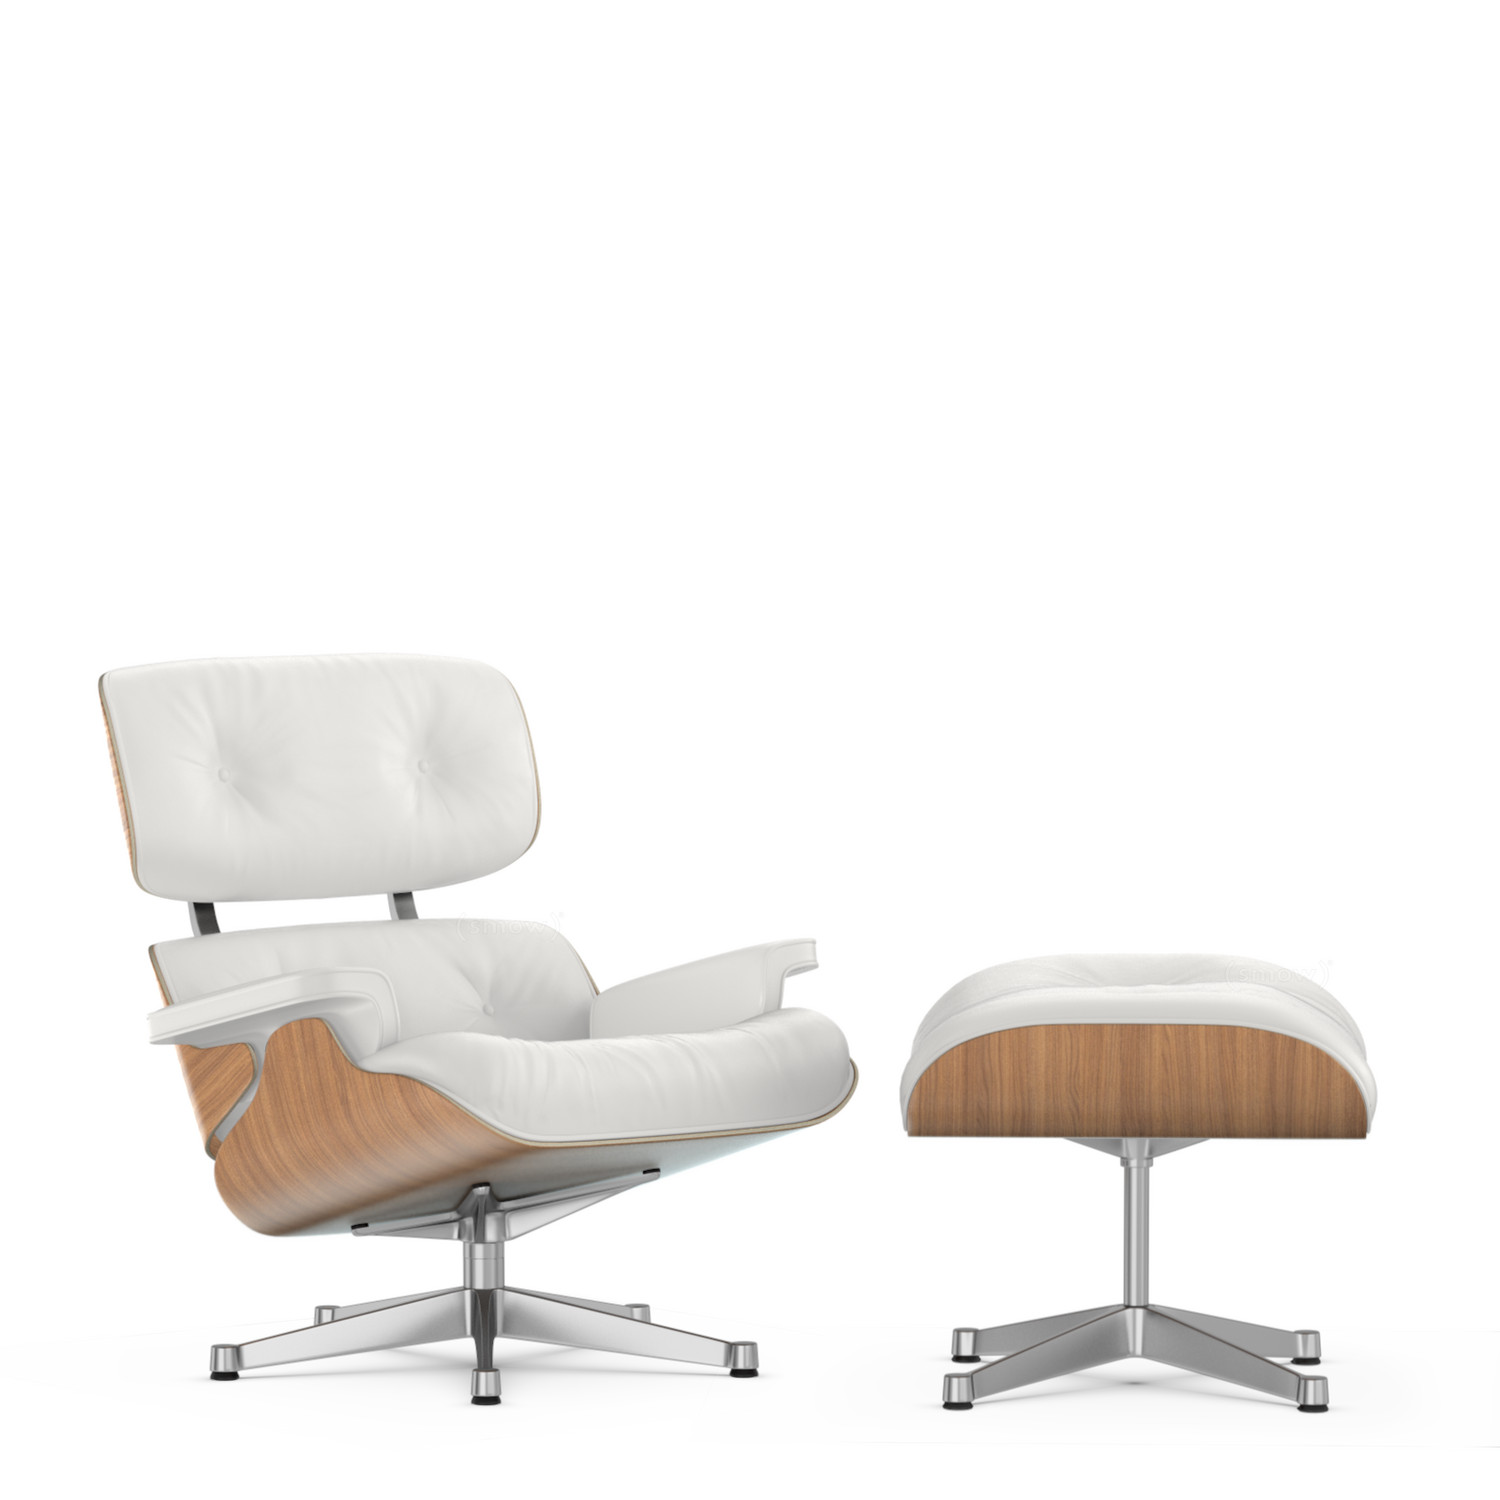 vitra lounge chair ottoman white version walnut with. Black Bedroom Furniture Sets. Home Design Ideas